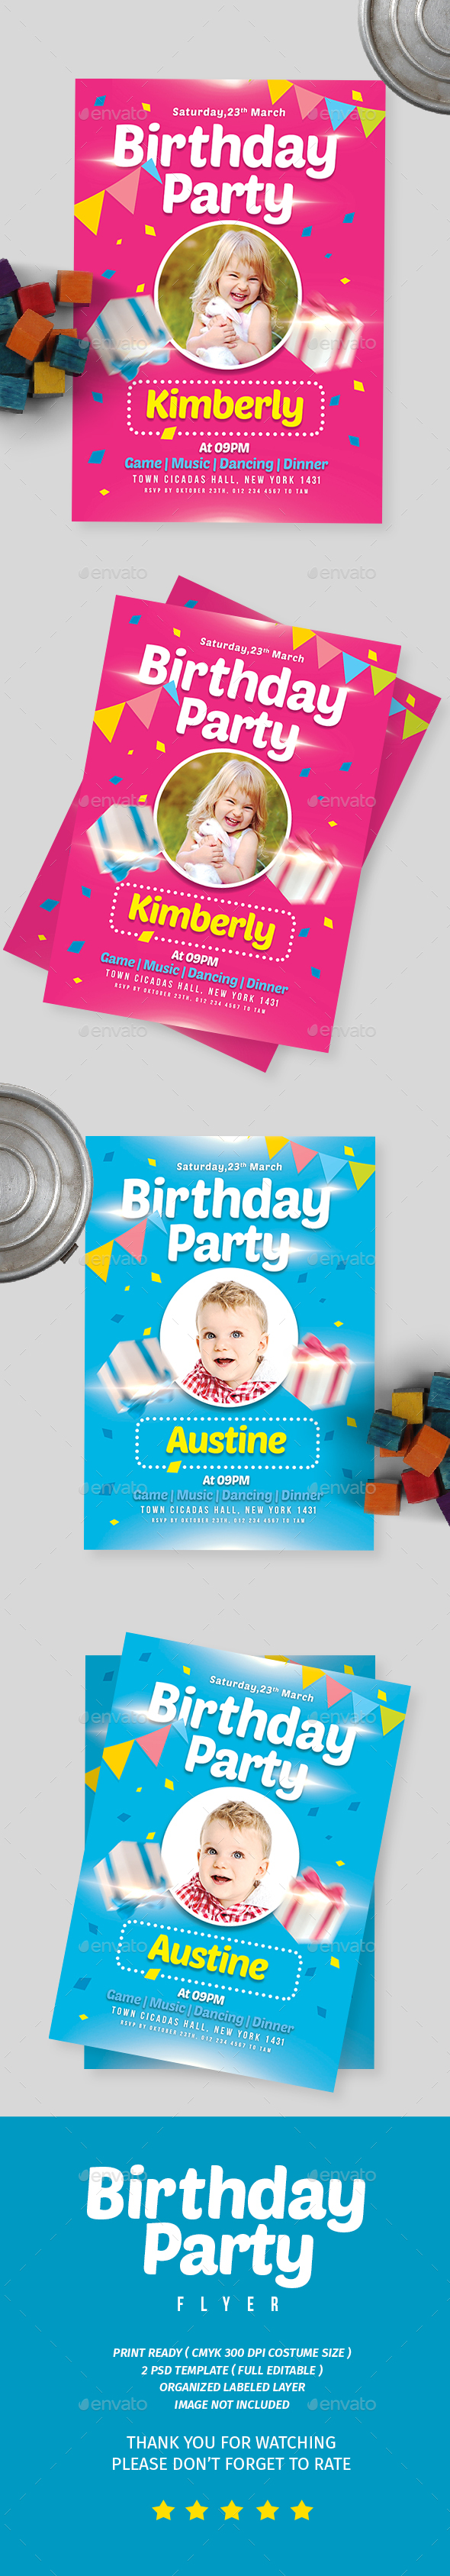 Kids Birthday Party Invitation by lilynthesweetpea – Child Birthday Party Invitations